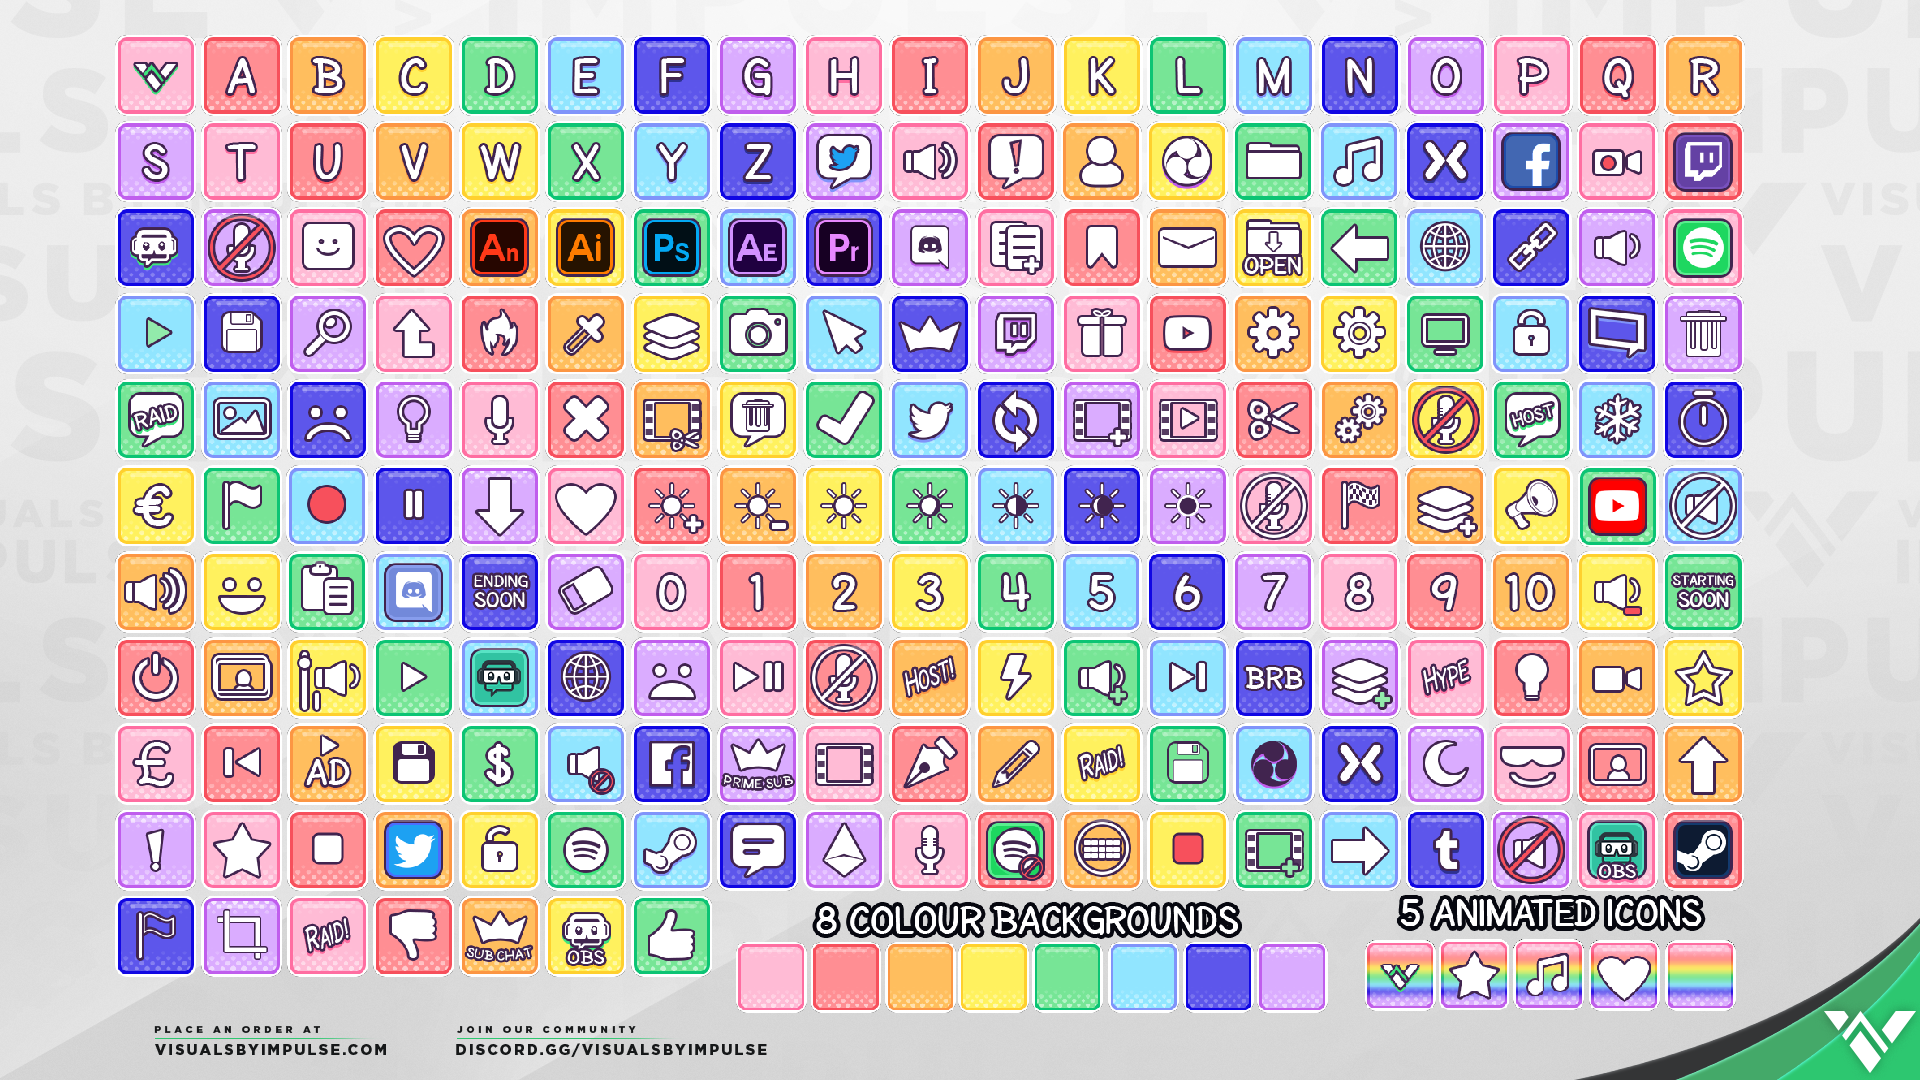 Rainbow: Free Elgato Stream Deck Icons for Twitch Streamers